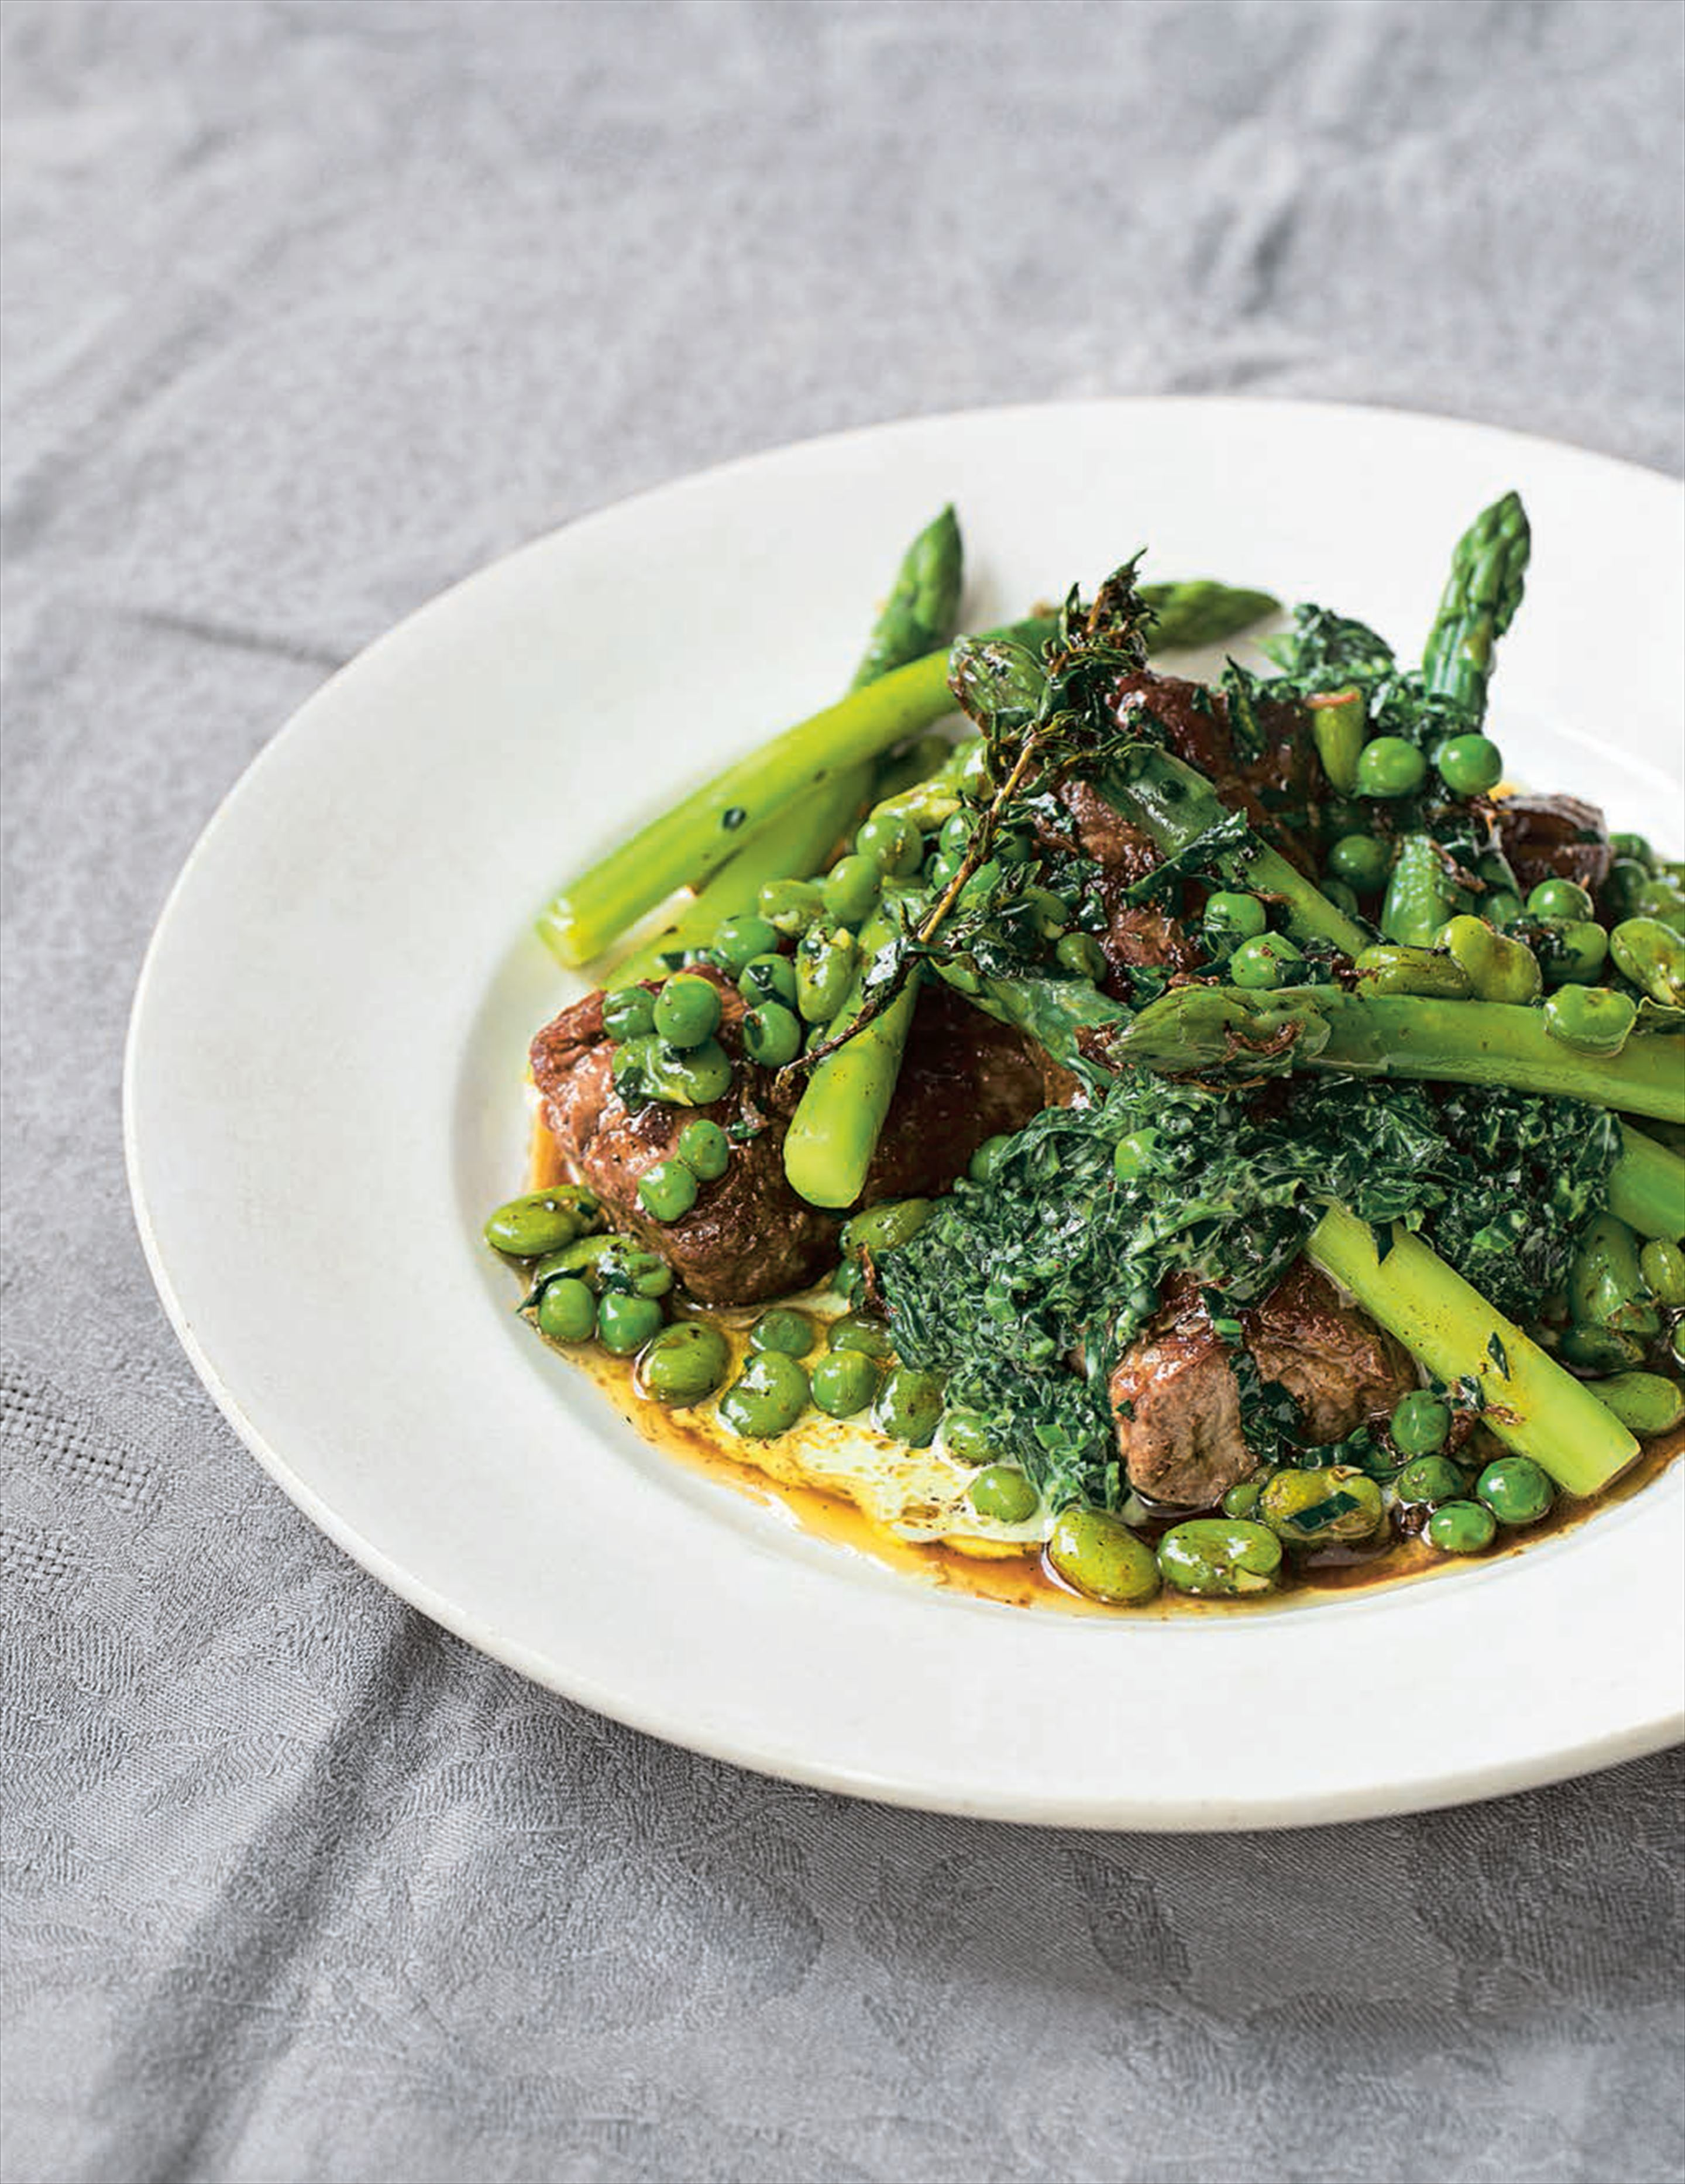 Braised lamb neck, peas, broad beans, asparagus and creamed wild garlic